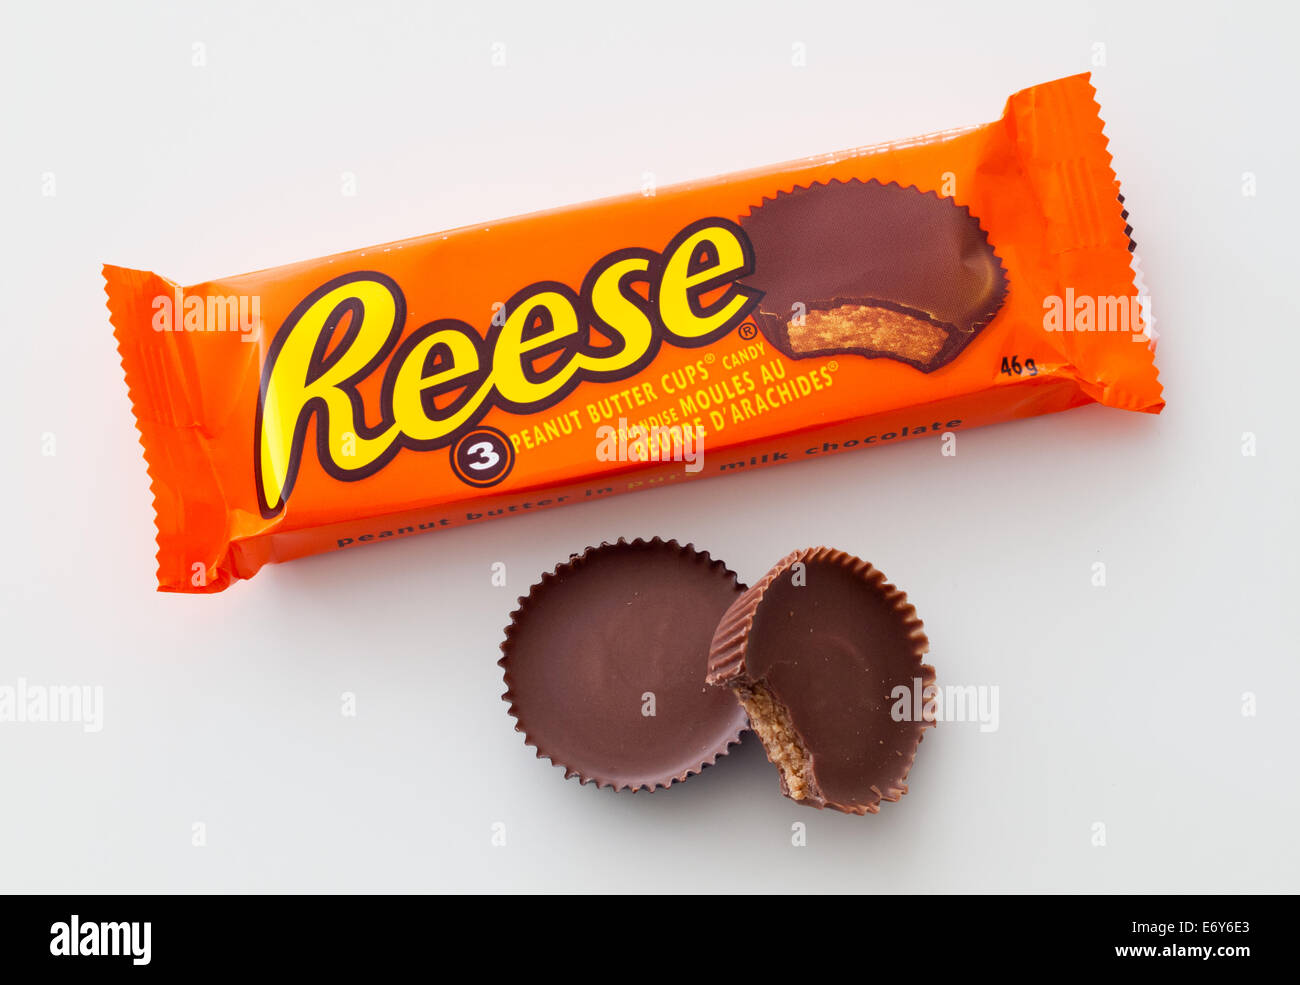 Delicious Reese's Peanut Butter Cups, produced by The Hershey Company. - Stock Image